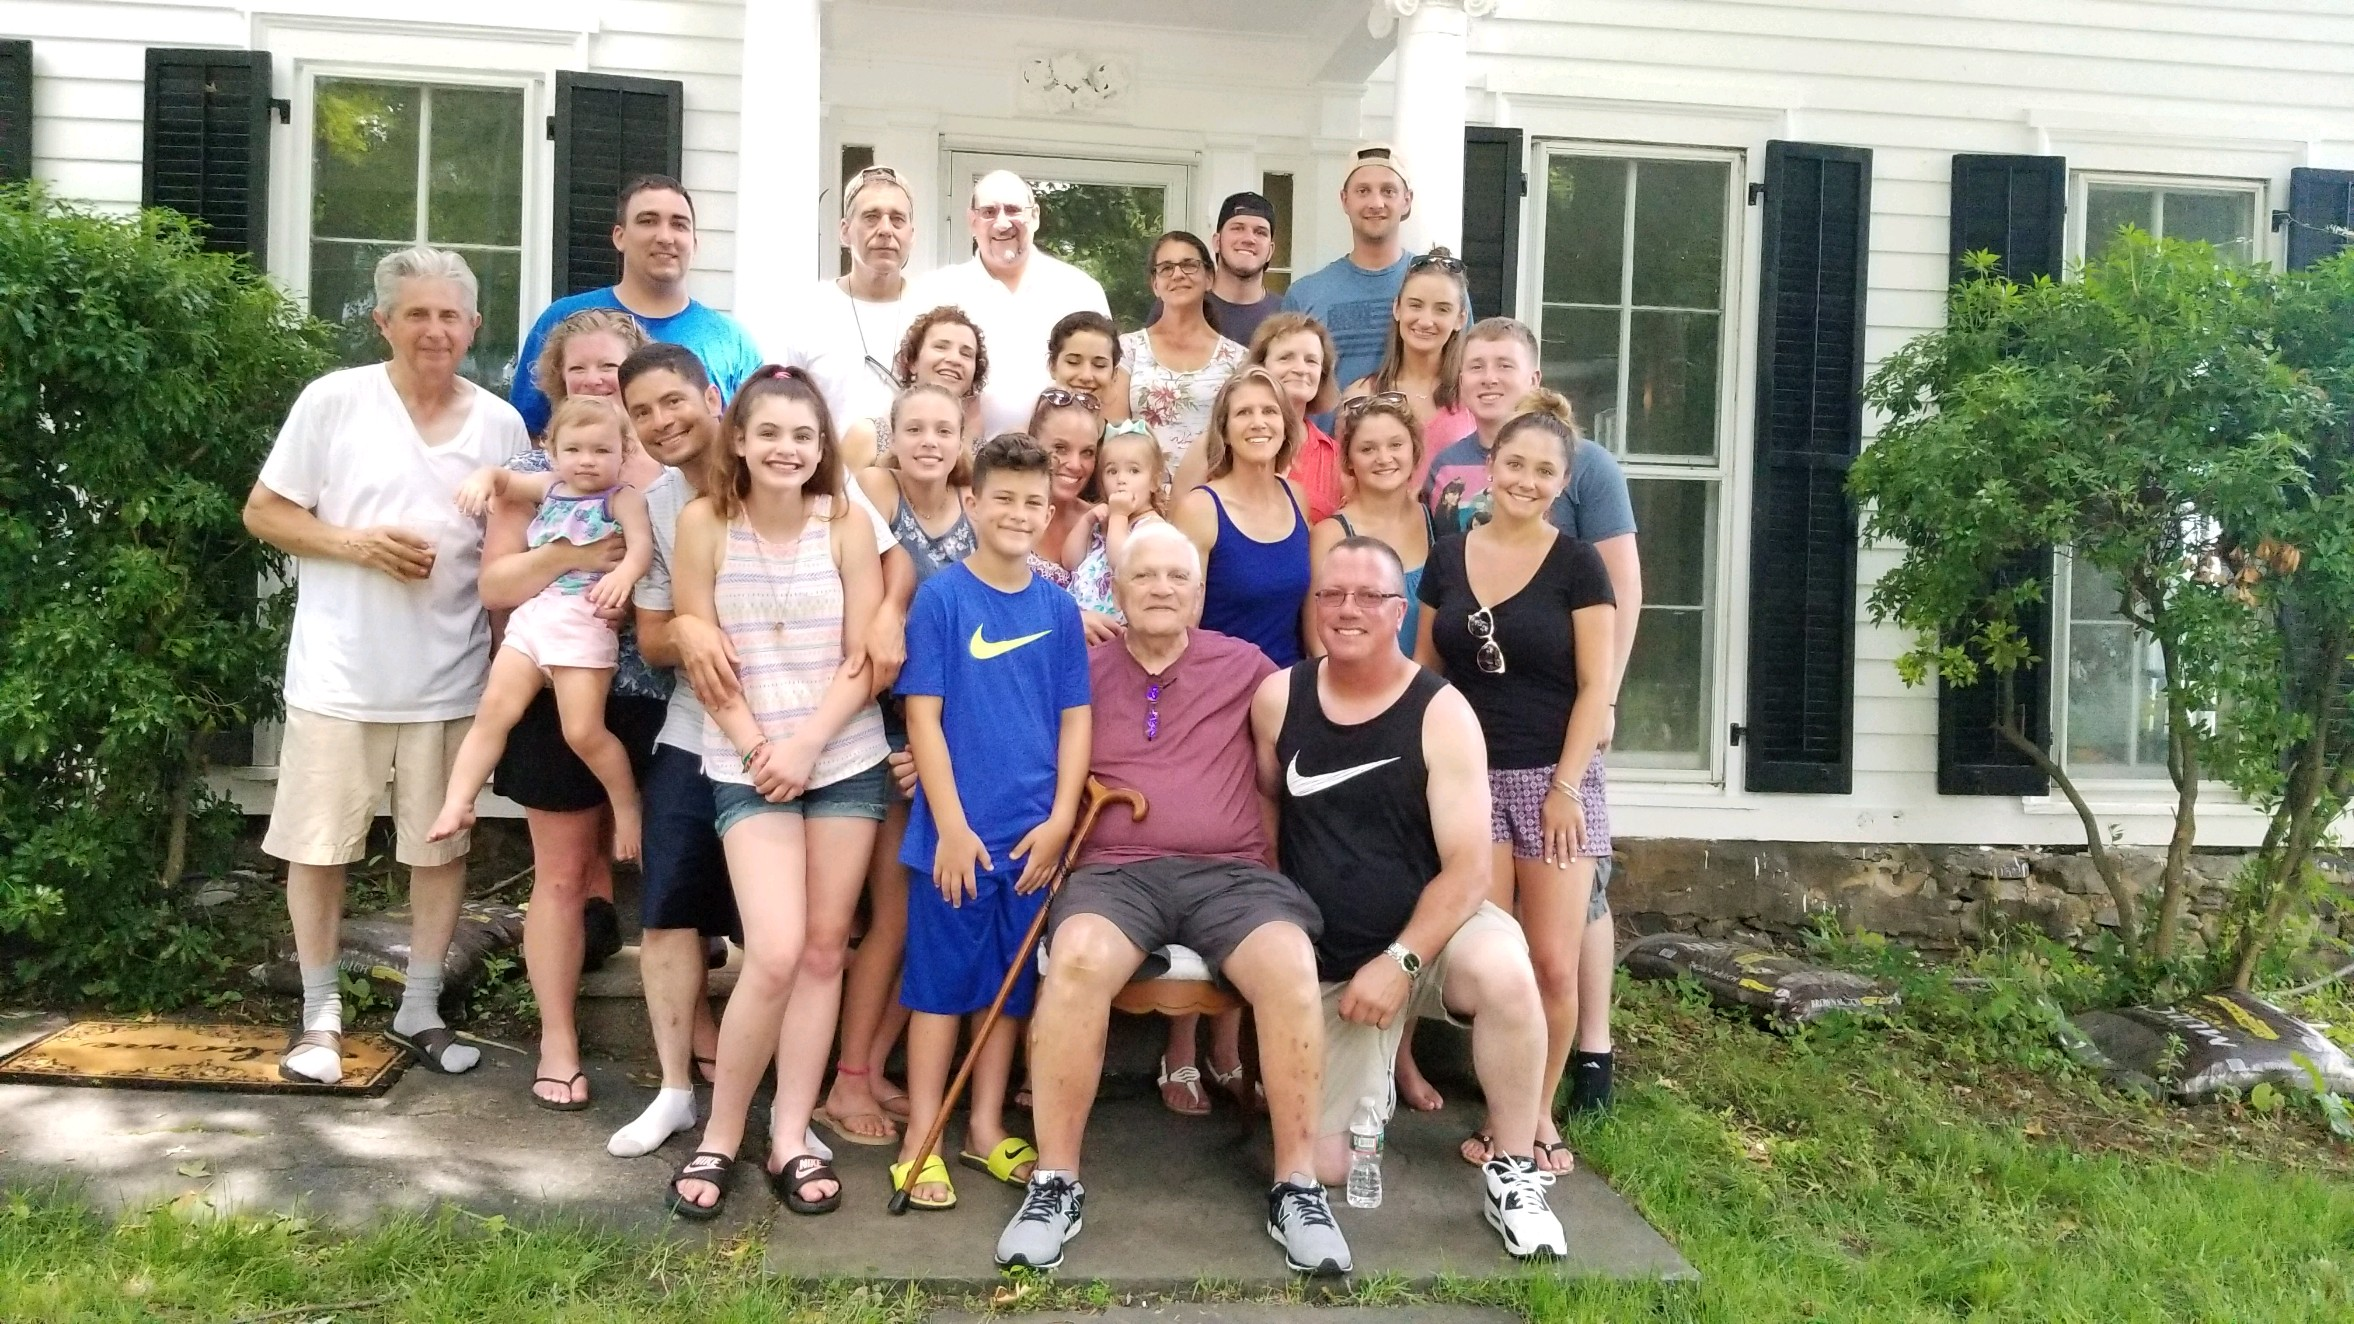 29 June 2018 - About 1/4 of my cousins, visiting my Great Uncle's old home.